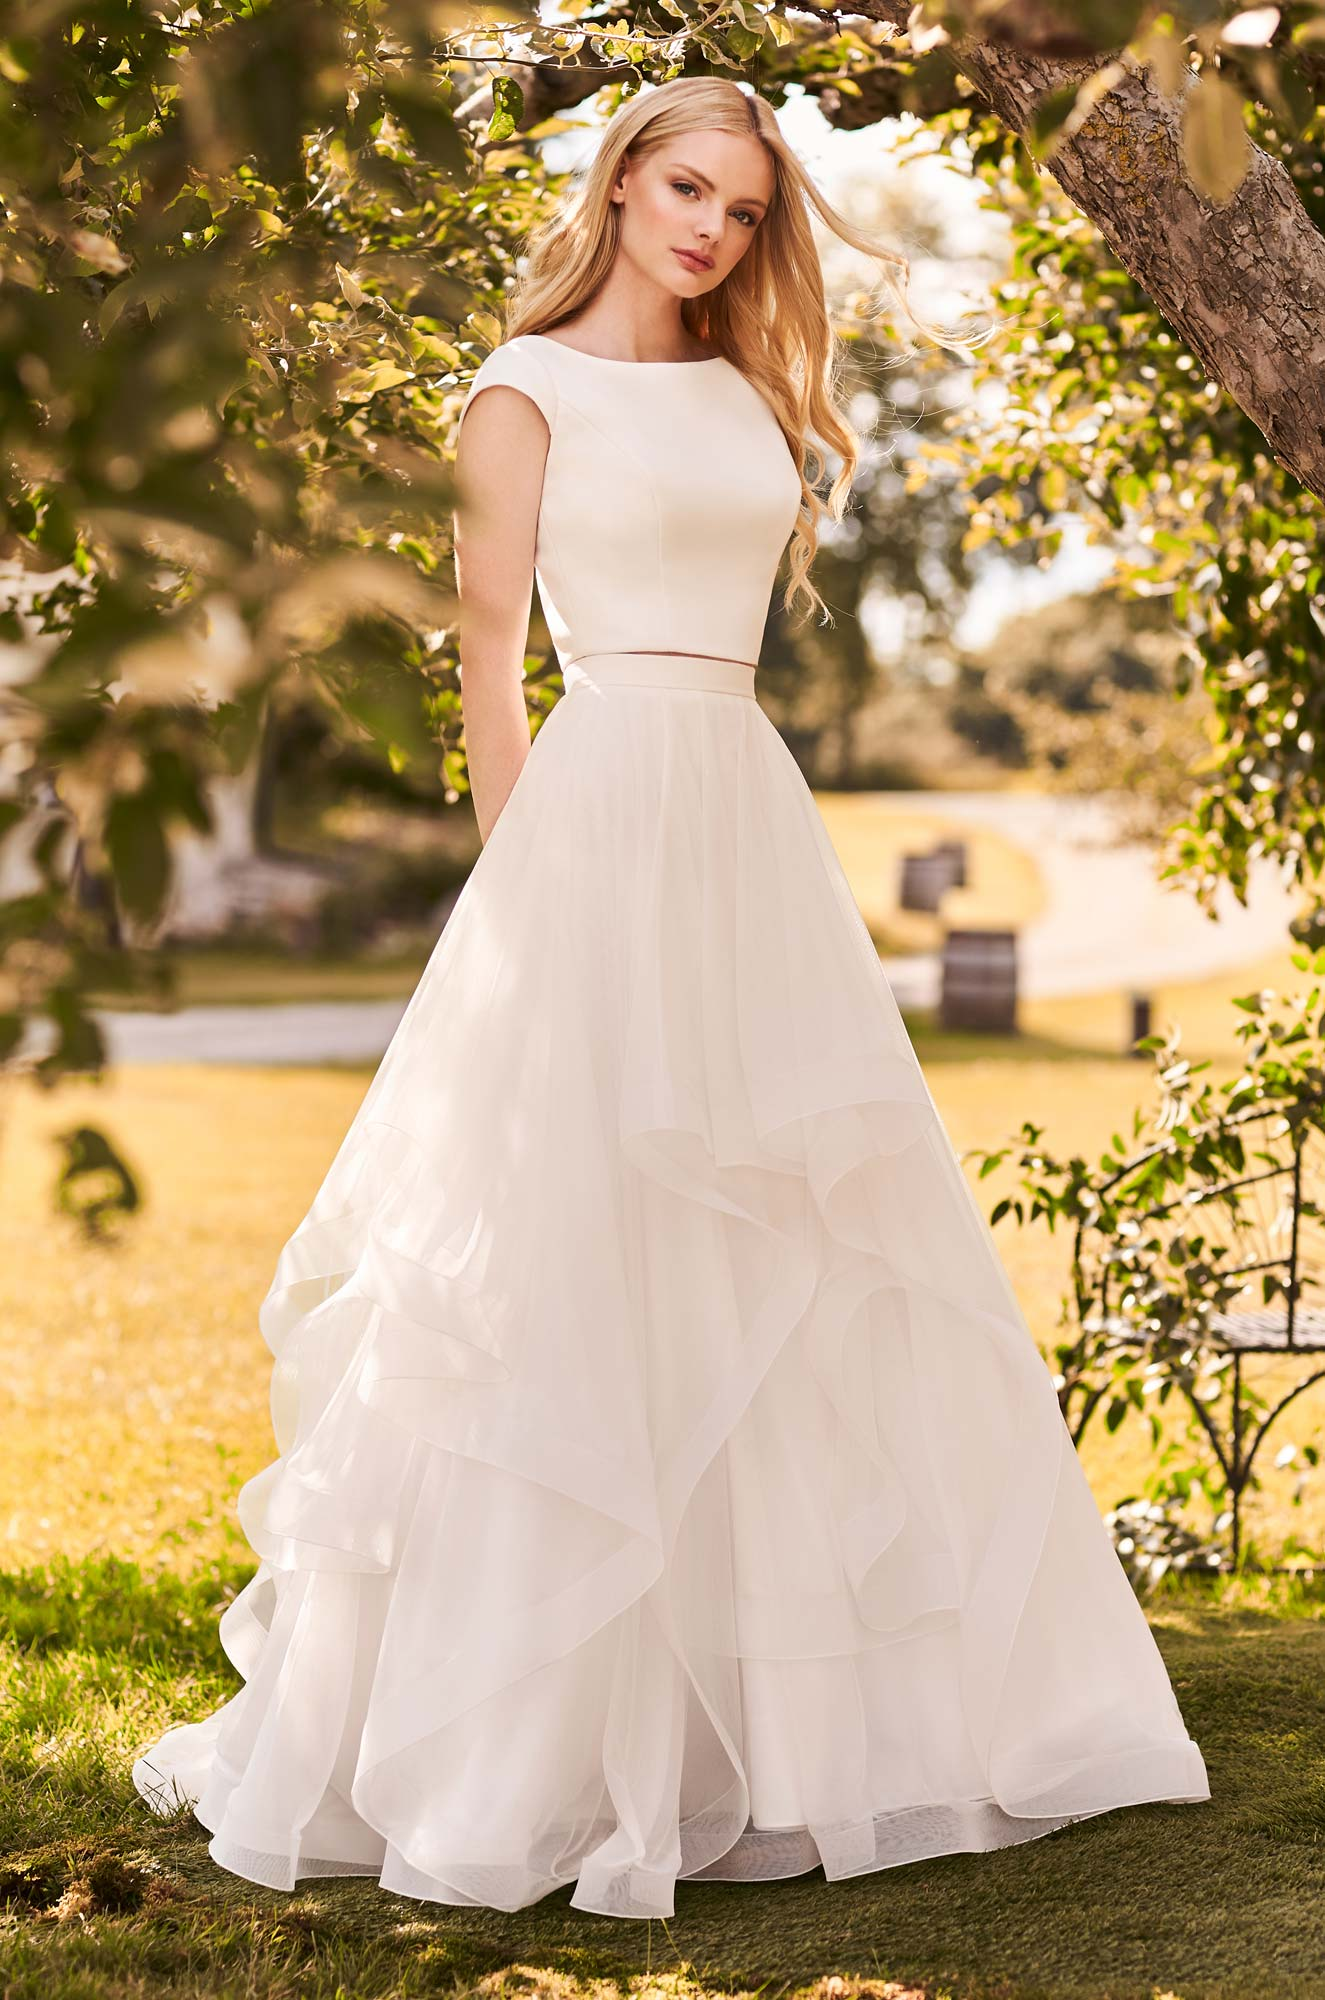 Stylish Two Piece Wedding Dress – Style #2298 | Mikaella Bridal